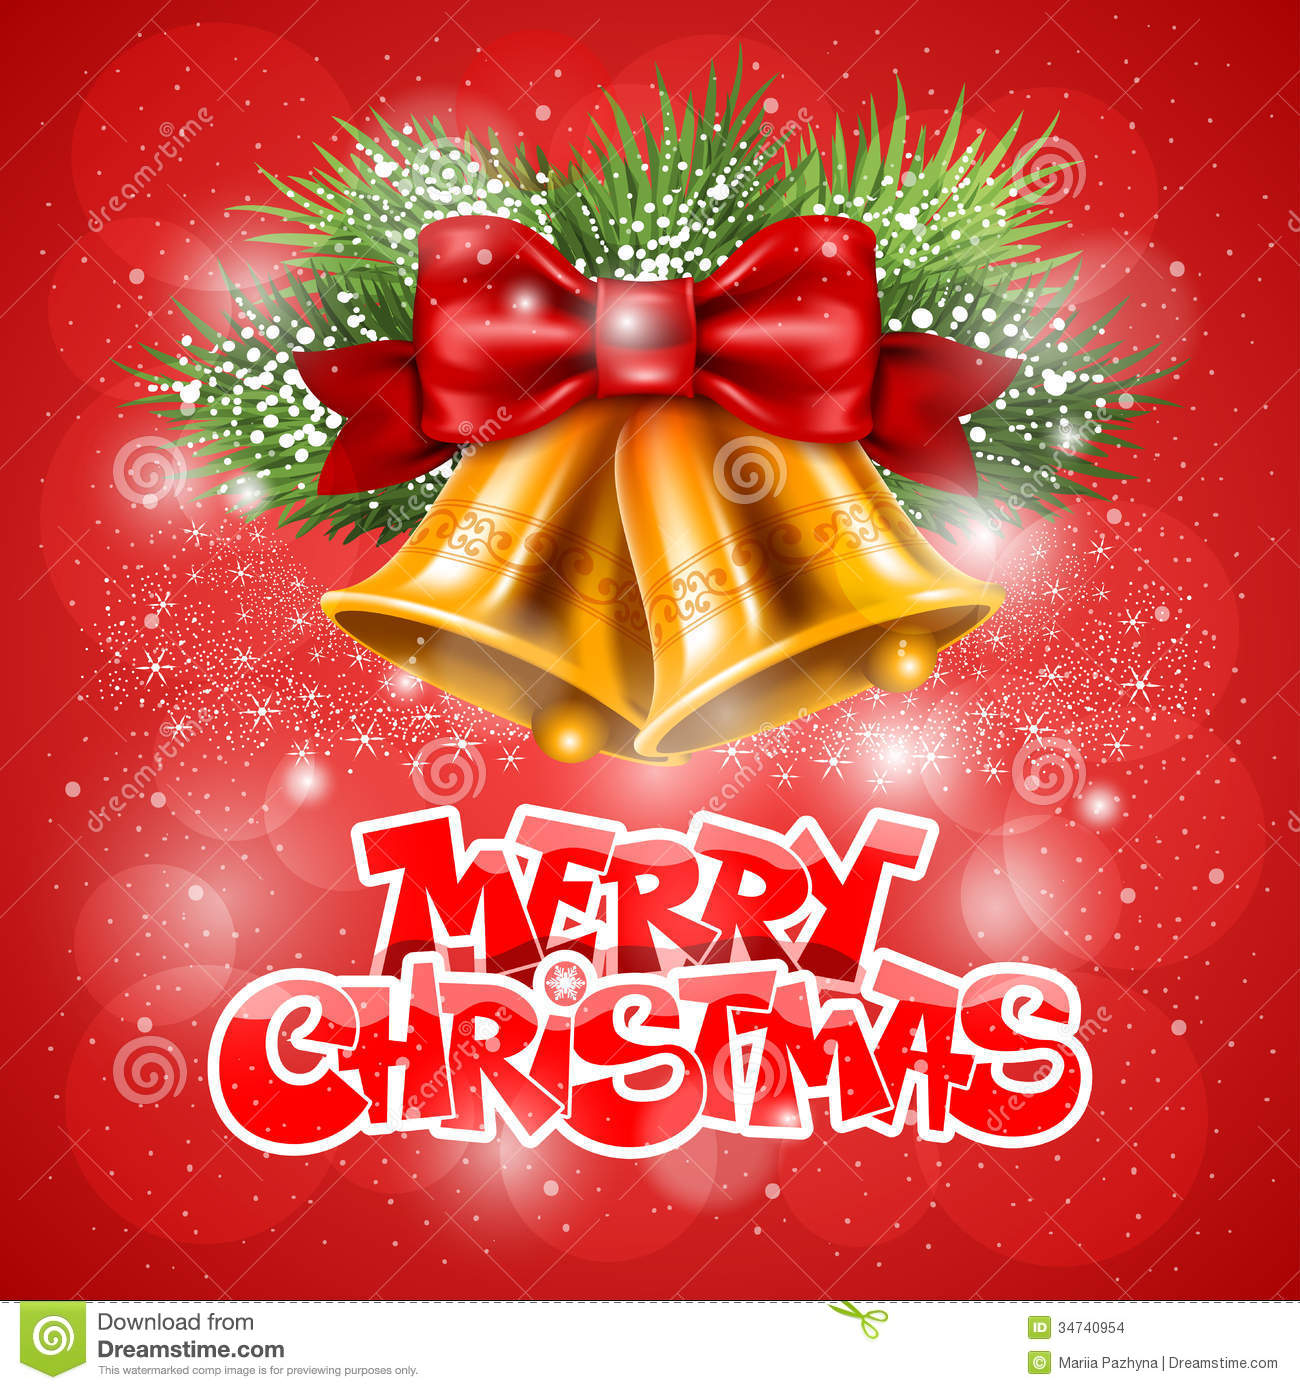 Christmas greeting images selol ink christmas greeting images m4hsunfo